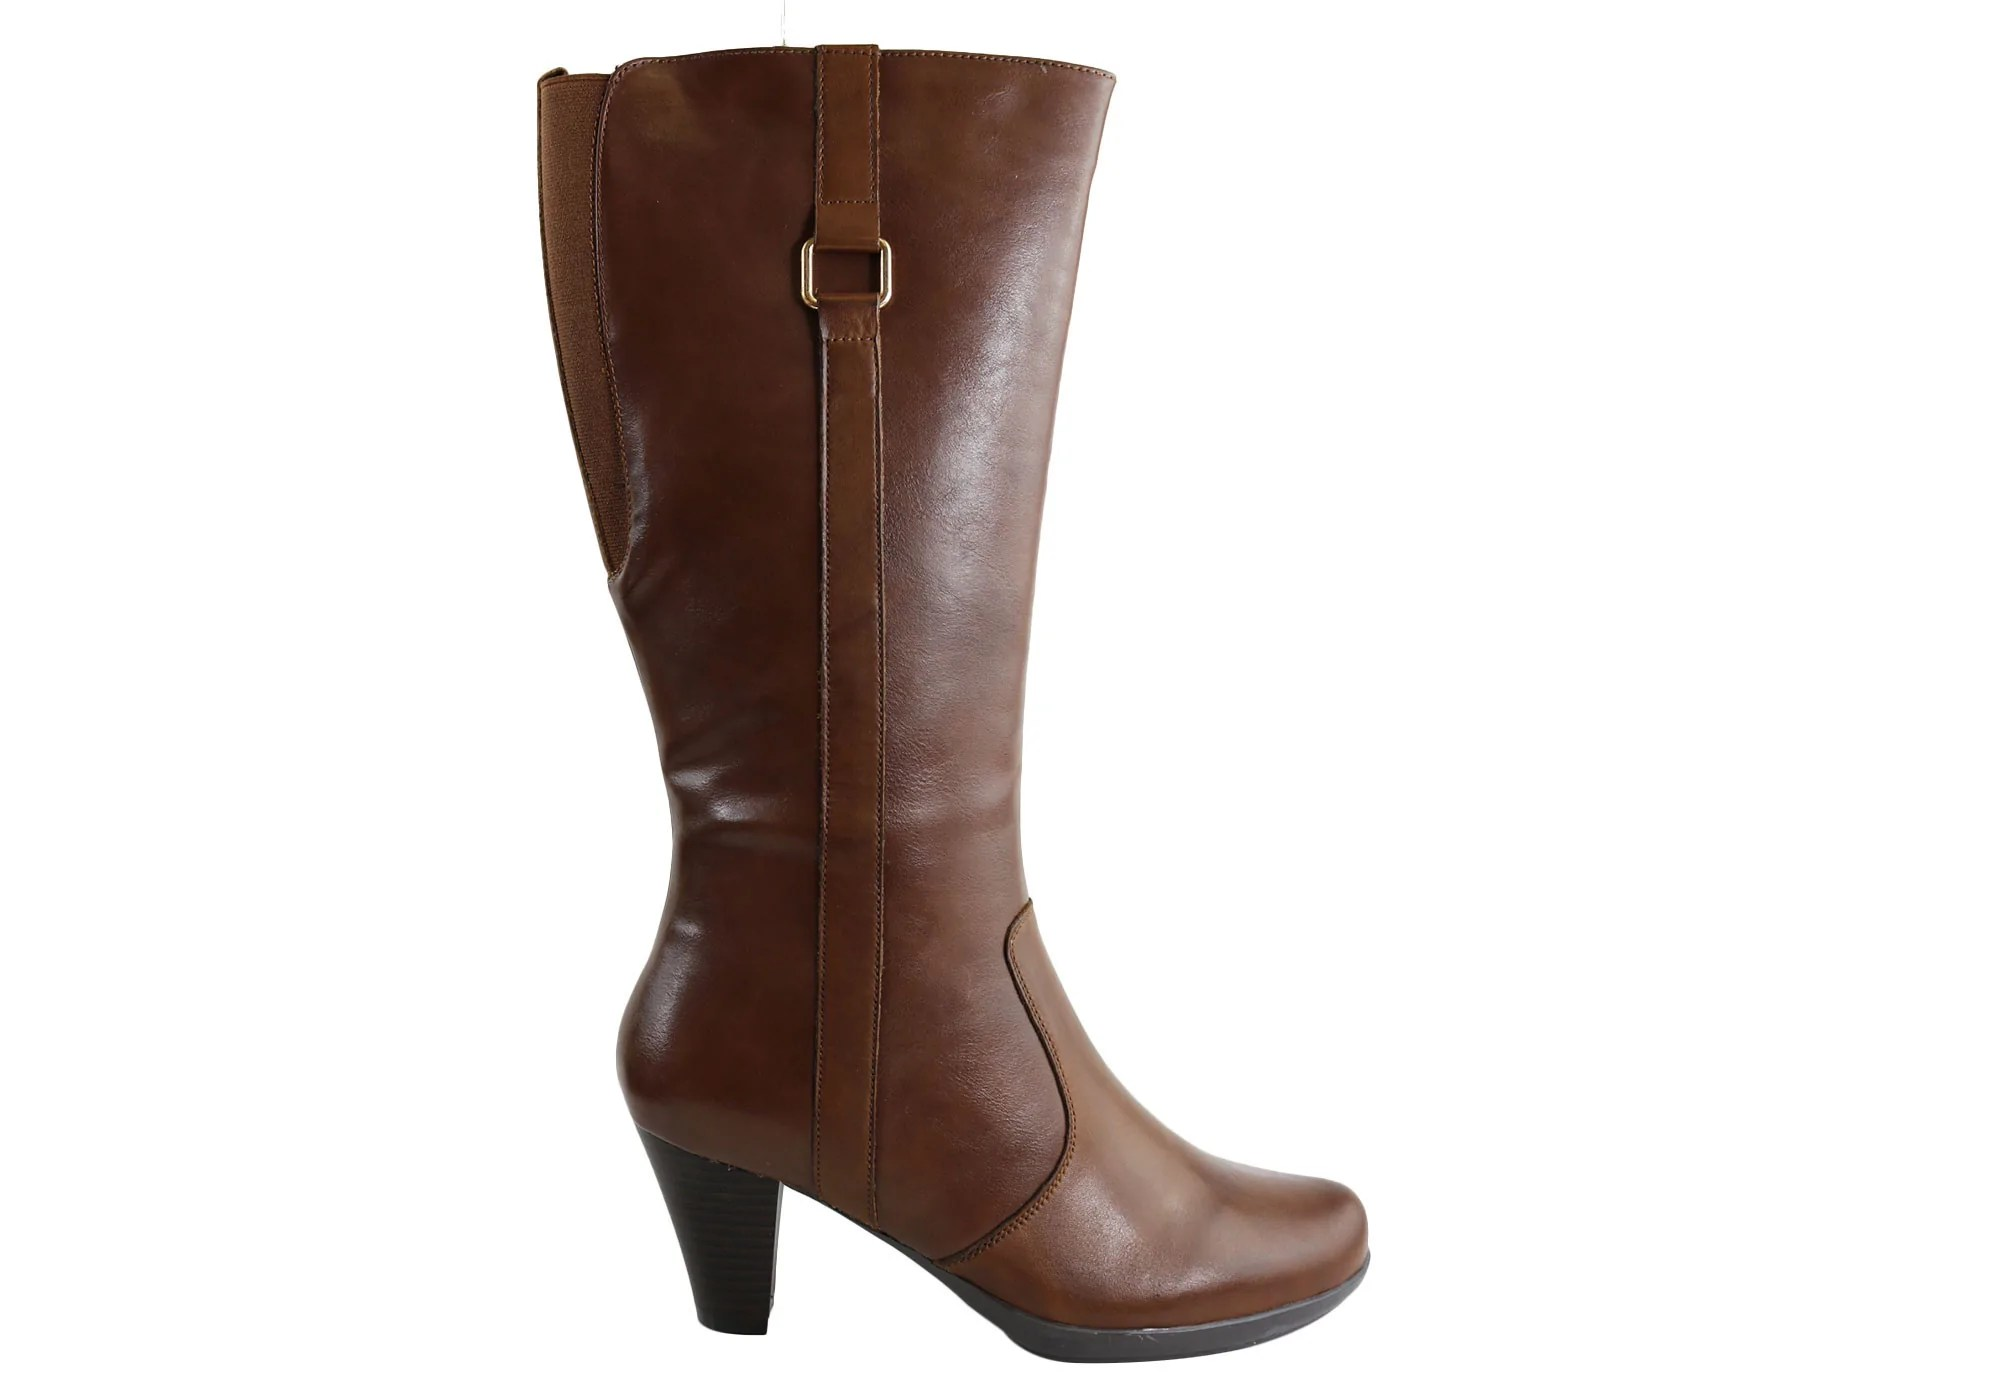 Natural Comfort Rebecca Womens Leather Knee High Mid Heel